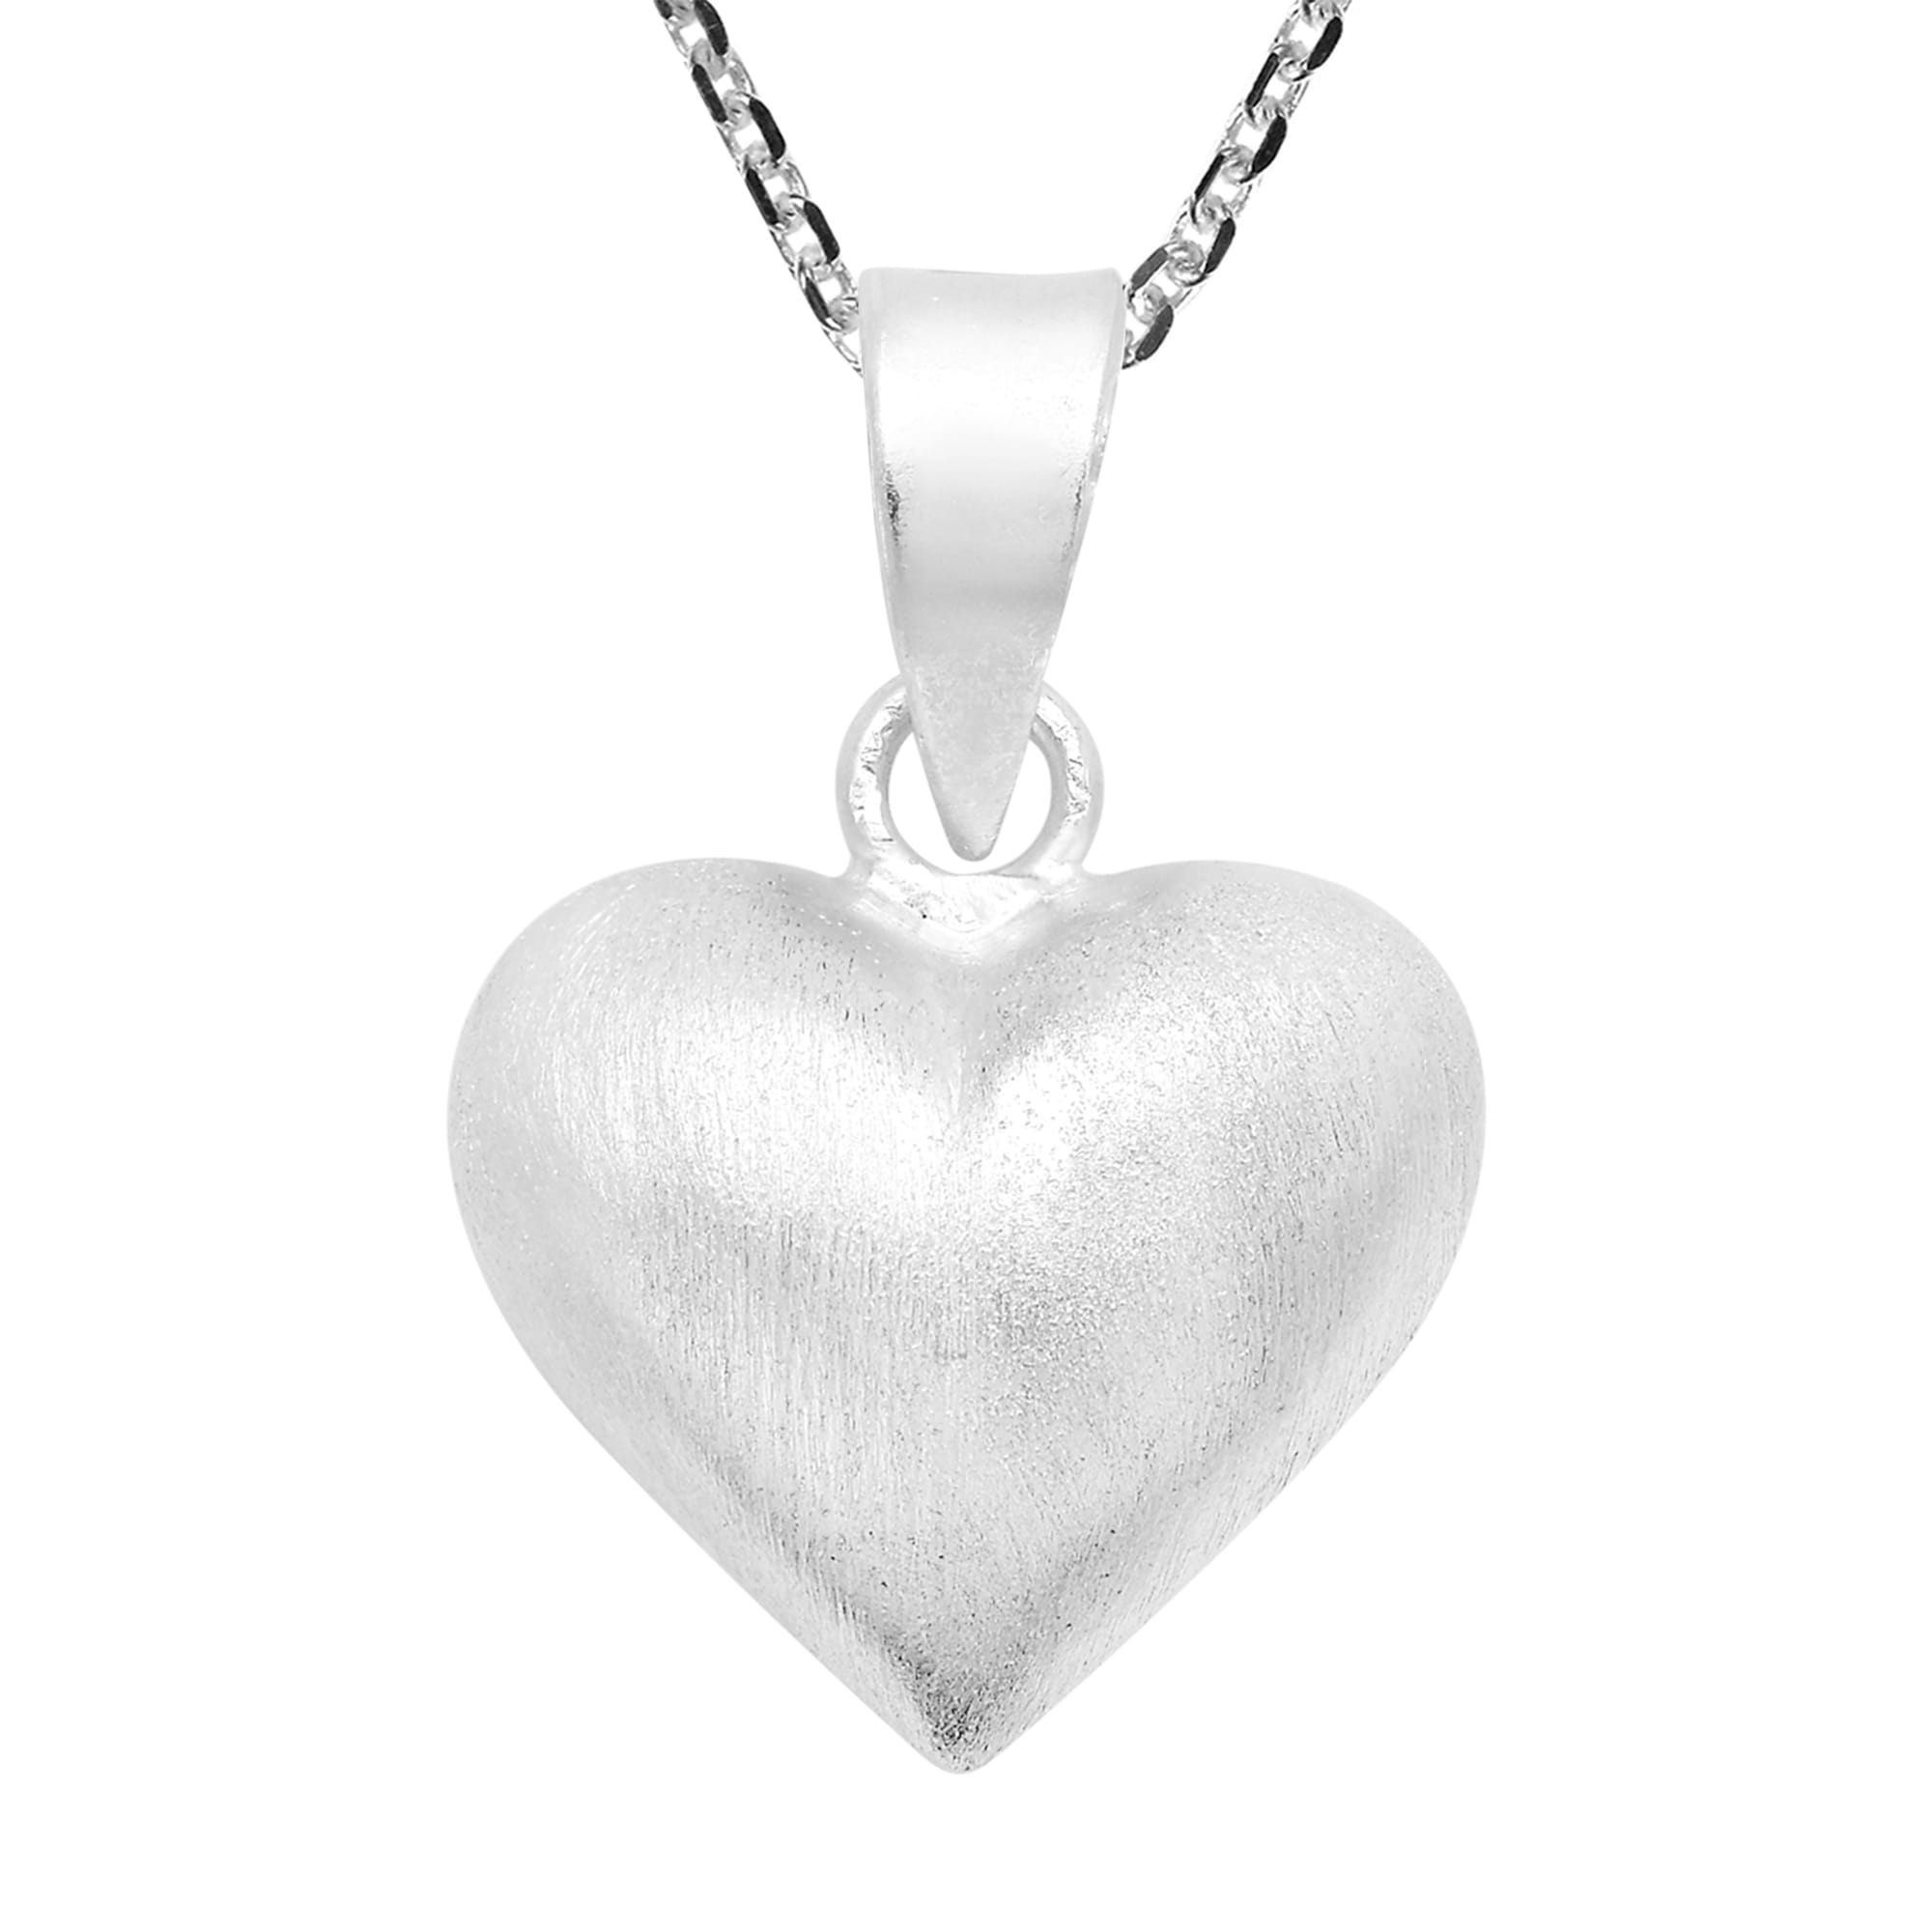 951cb838ef Handmade Romantic Matte Finish Sterling Silver Heart Necklace (Thailand). by  Aeravida